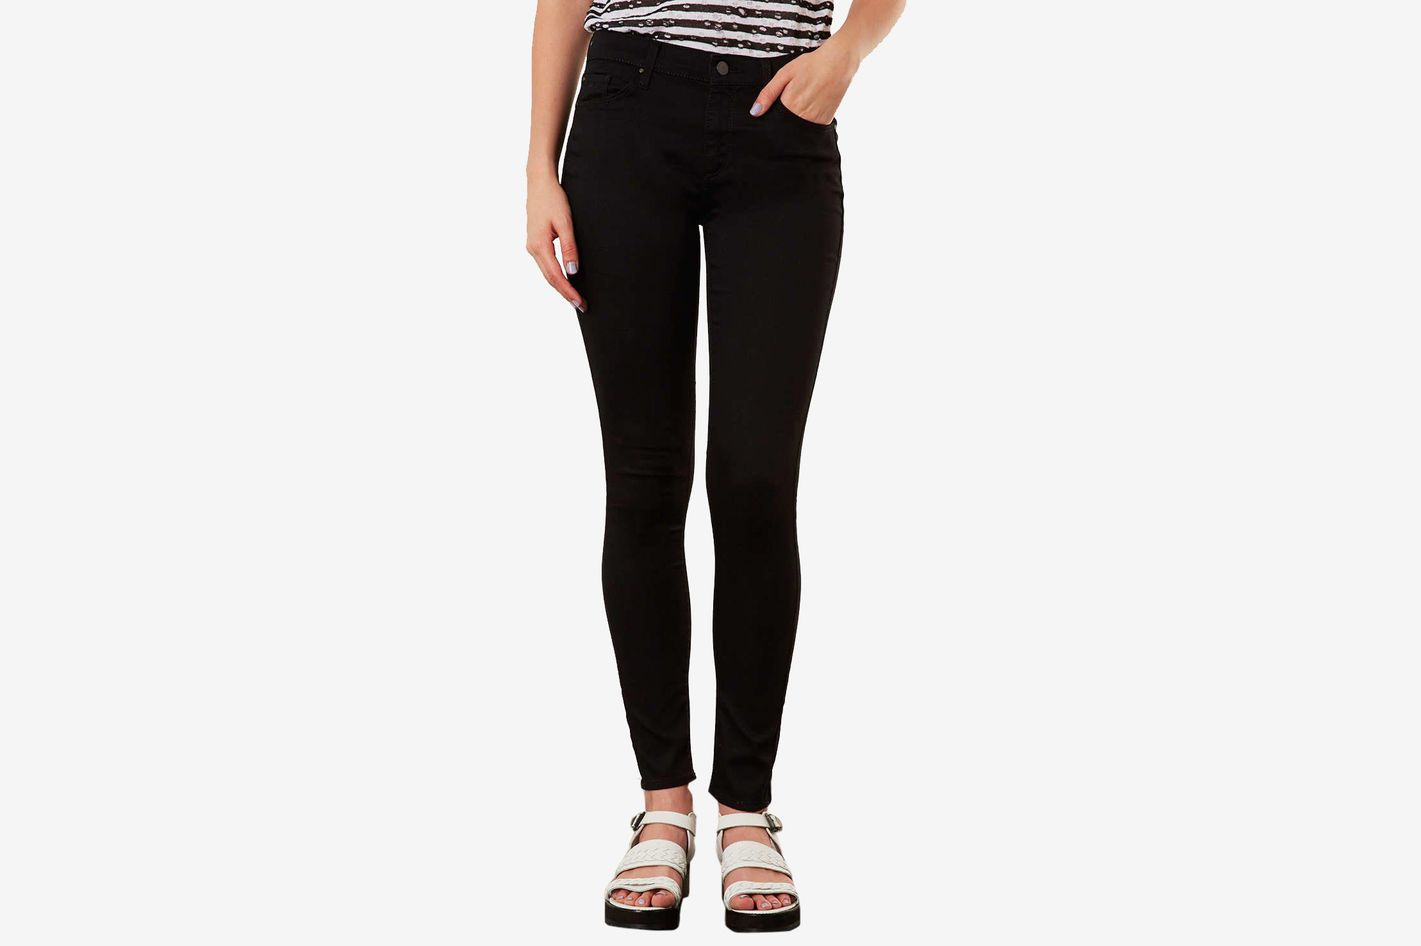 Topshop Petite Leigh Jeans